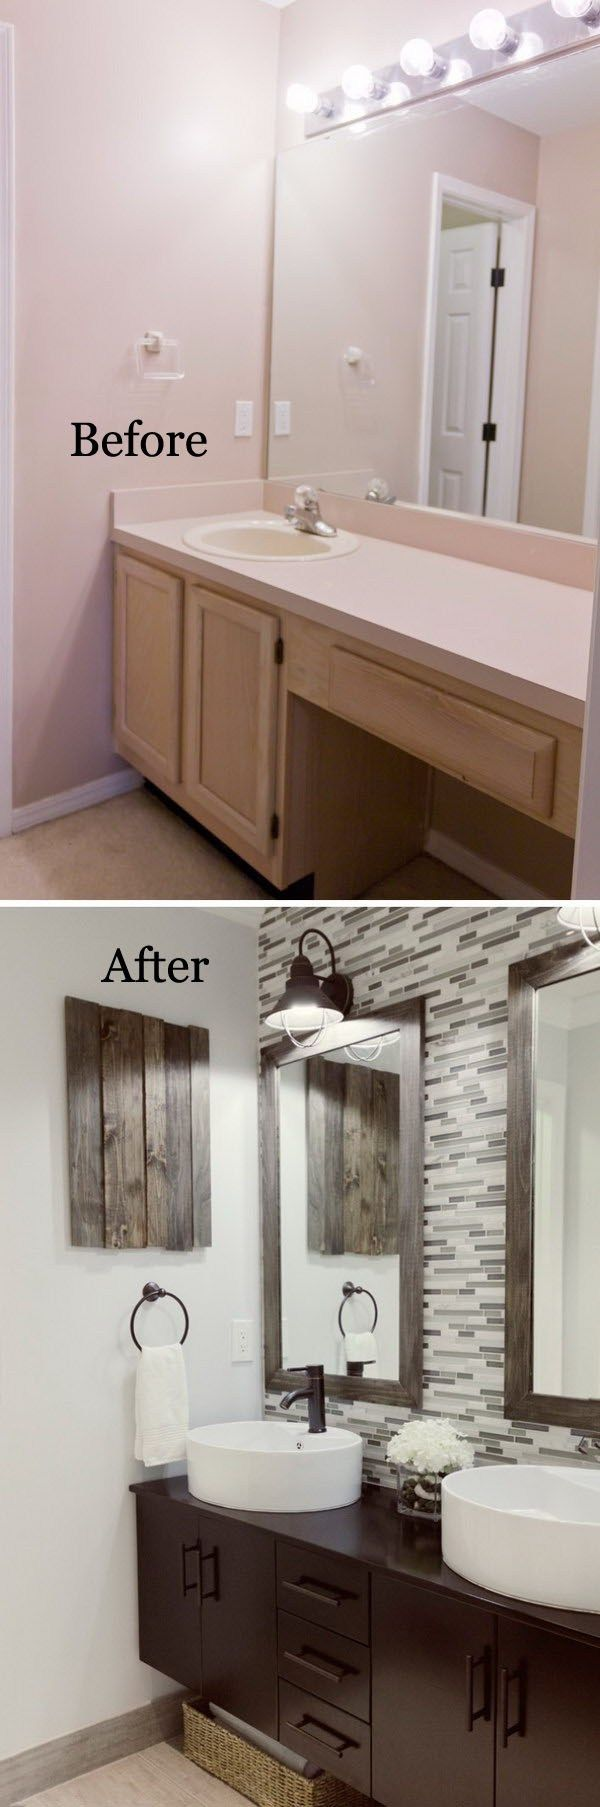 37 small bathroom makeovers before and after pics bath - Before and after small bathroom remodels ...